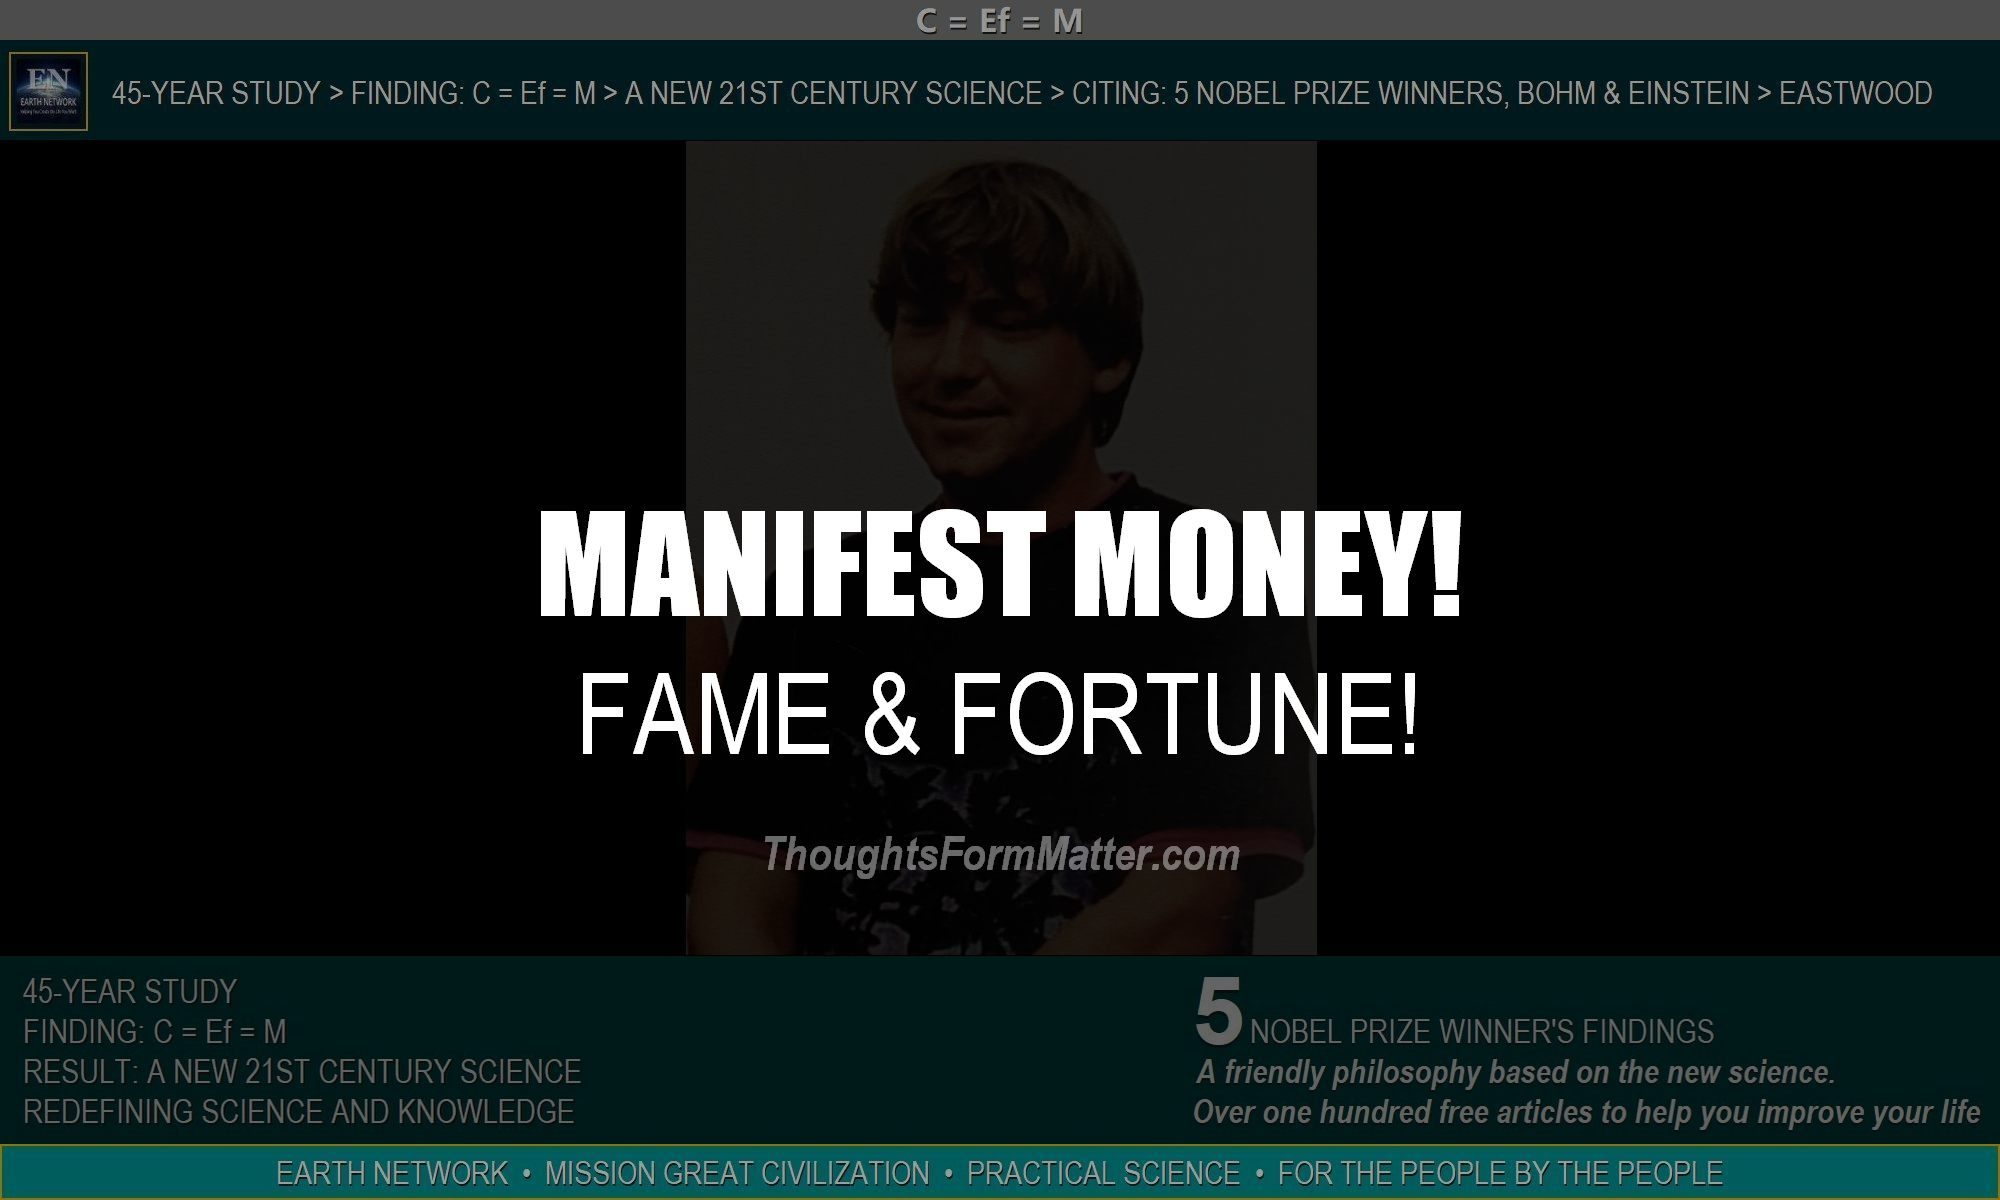 William Eastwood explains how you can manifest money, fame and fortune. Learn how to become a rich and famous person.